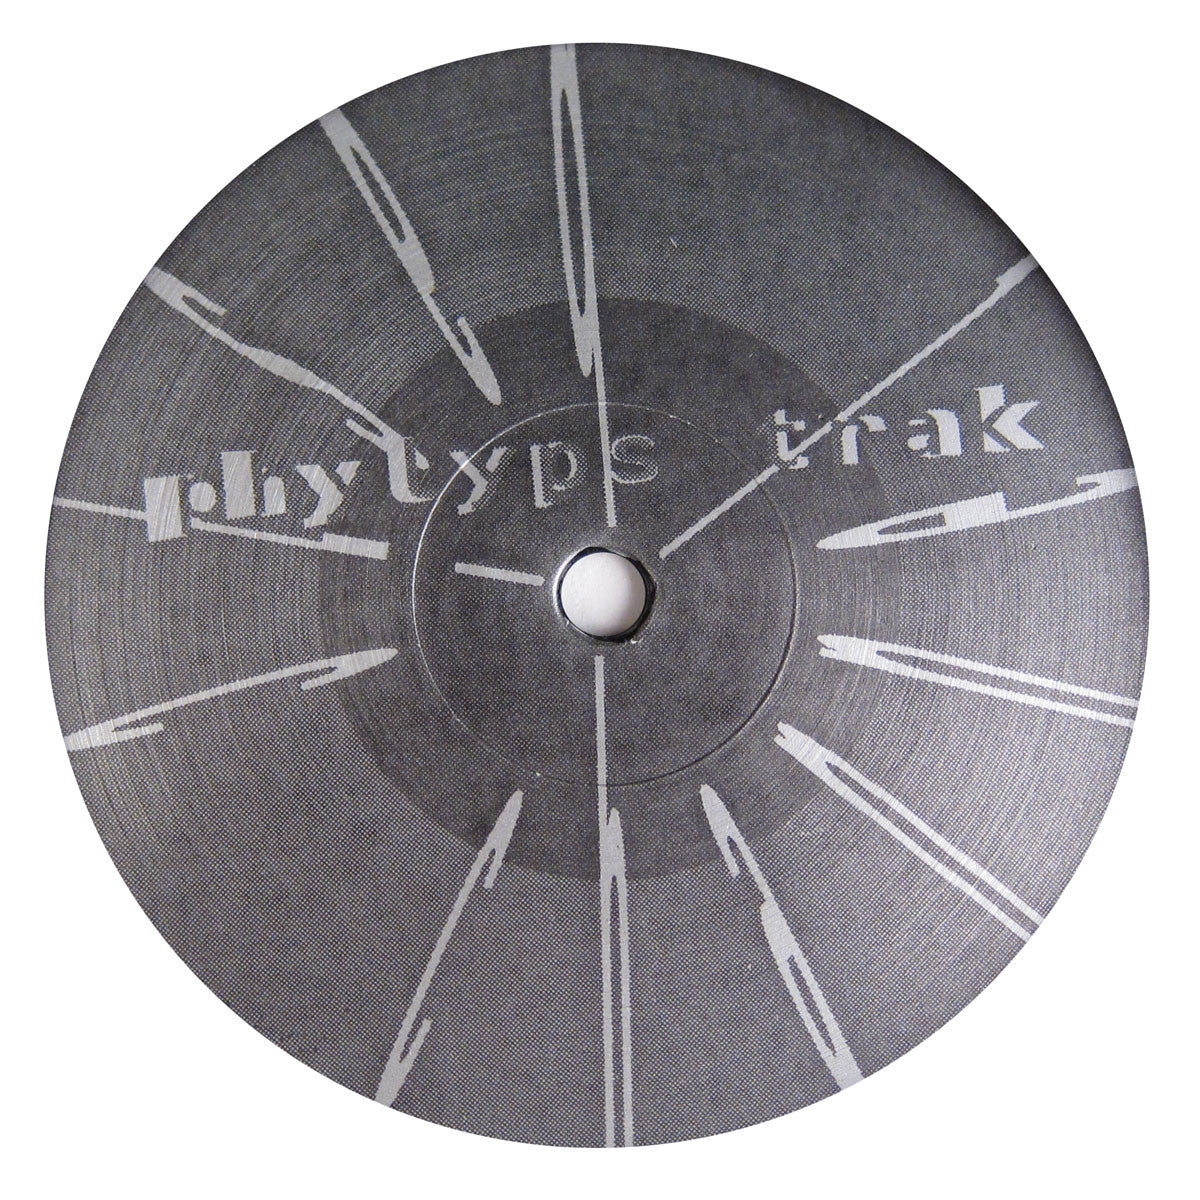 "Basic Channel: Phylyps Trak Vinyl (Mark Ernestus, Moritz von Oswald) 12"" label"